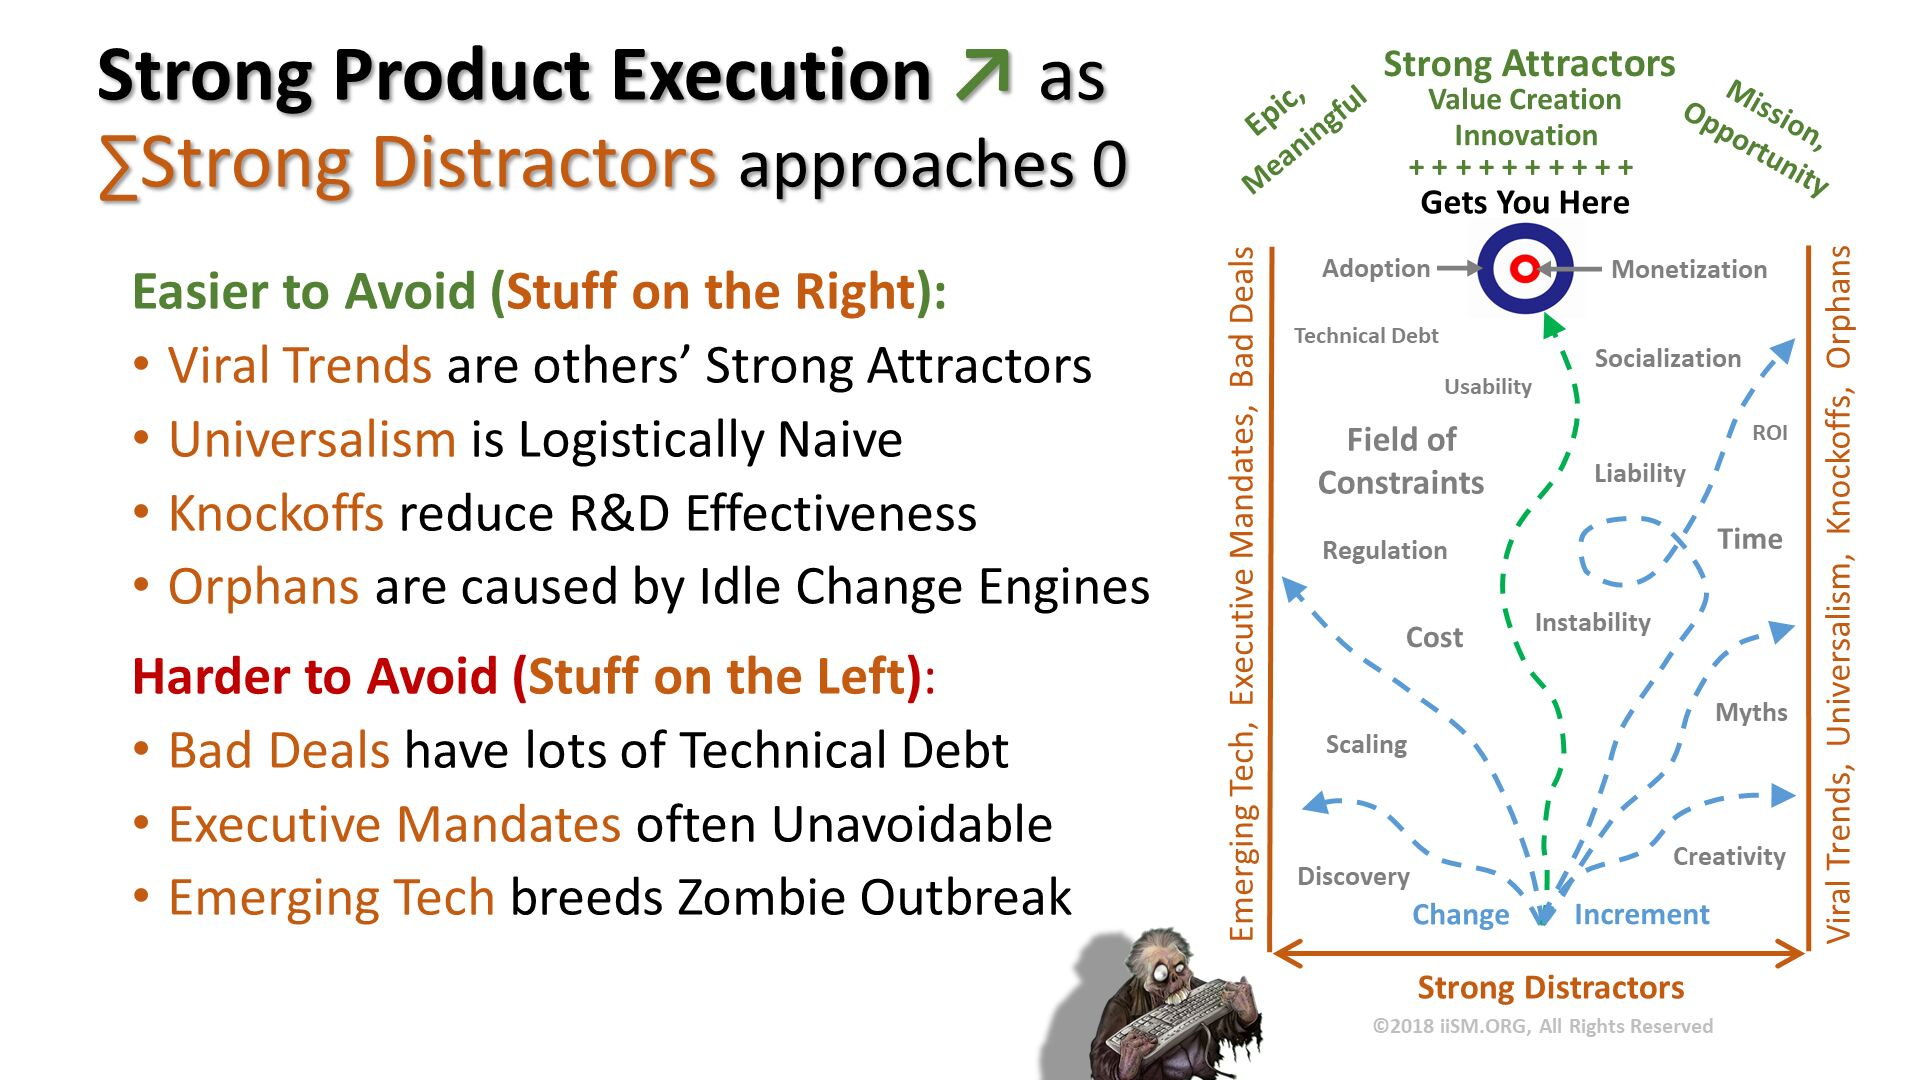 Strong Product Execution ↗ as∑Strong Distractors approaches 0. Easier to Avoid (Stuff on the Right): Viral Trends are others' Strong Attractors Universalism is Logistically Naive Knockoffs reduce R&D Effectiveness Orphans are caused by Idle Change Engines Harder to Avoid (Stuff on the Left): Bad Deals have lots of Technical Debt Executive Mandates often Unavoidable Emerging Tech breeds Zombie Outbreak .